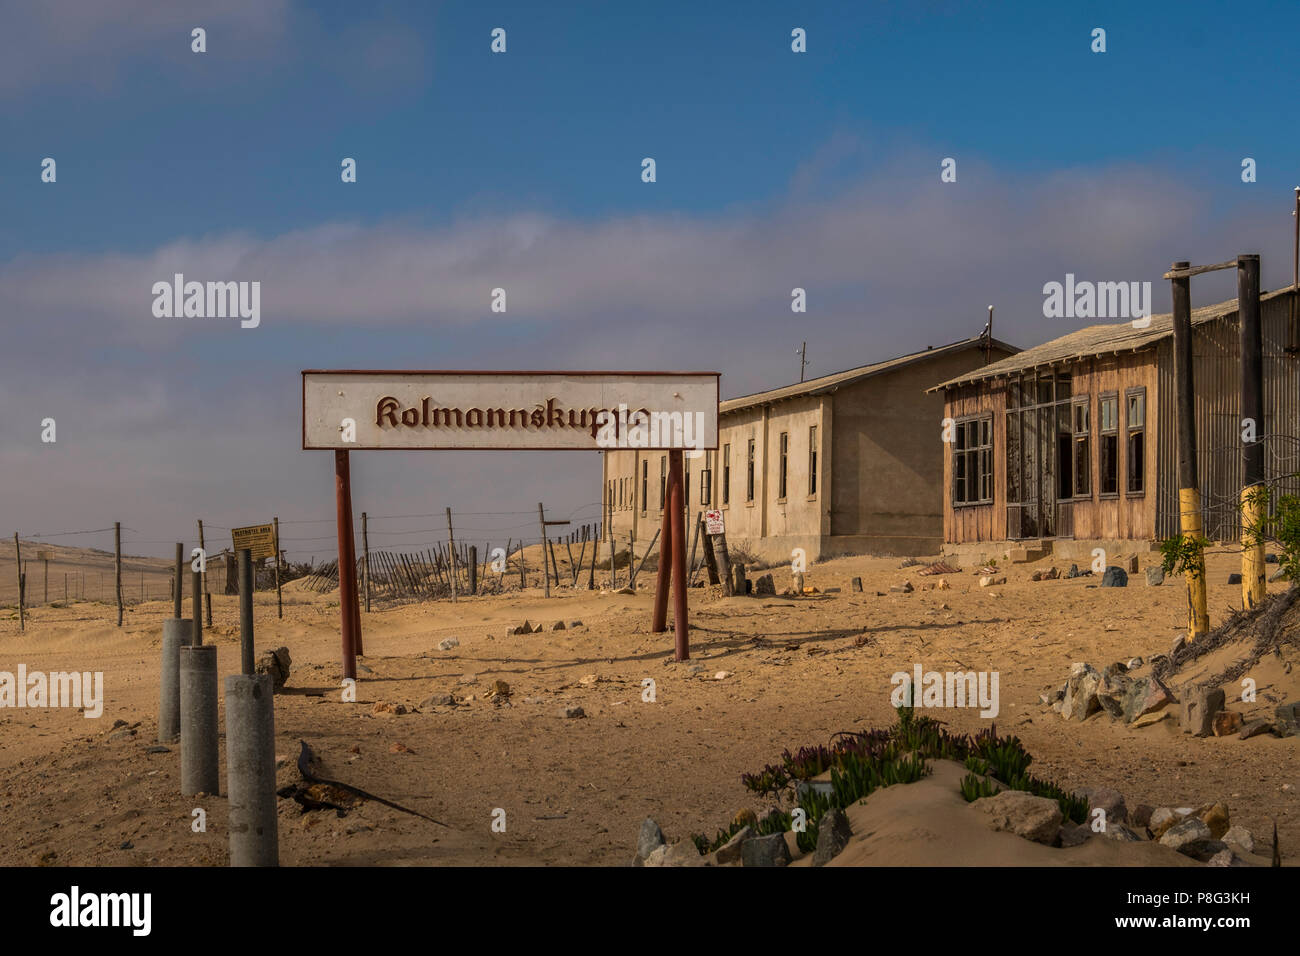 Kolmannskuppe, German spelling of Kolmanskop, sign with abandoned buildings in ghost town of former diamond mining community in the Namib Desert of Na - Stock Image